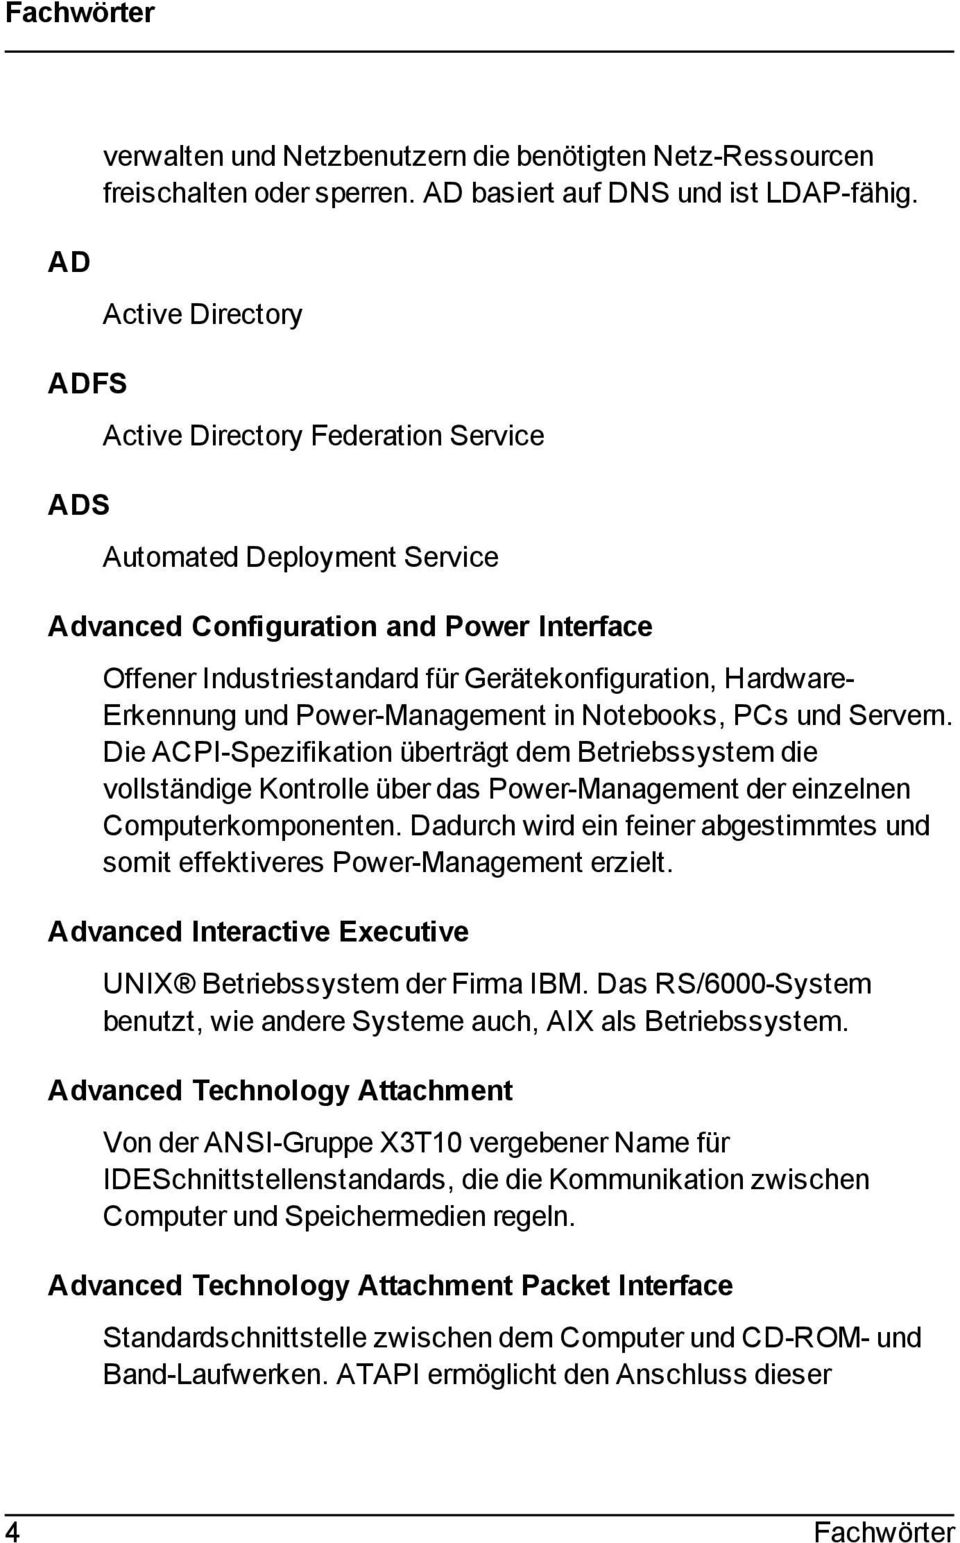 Erkennung und Power-Management in Notebooks, PCs und Servern.